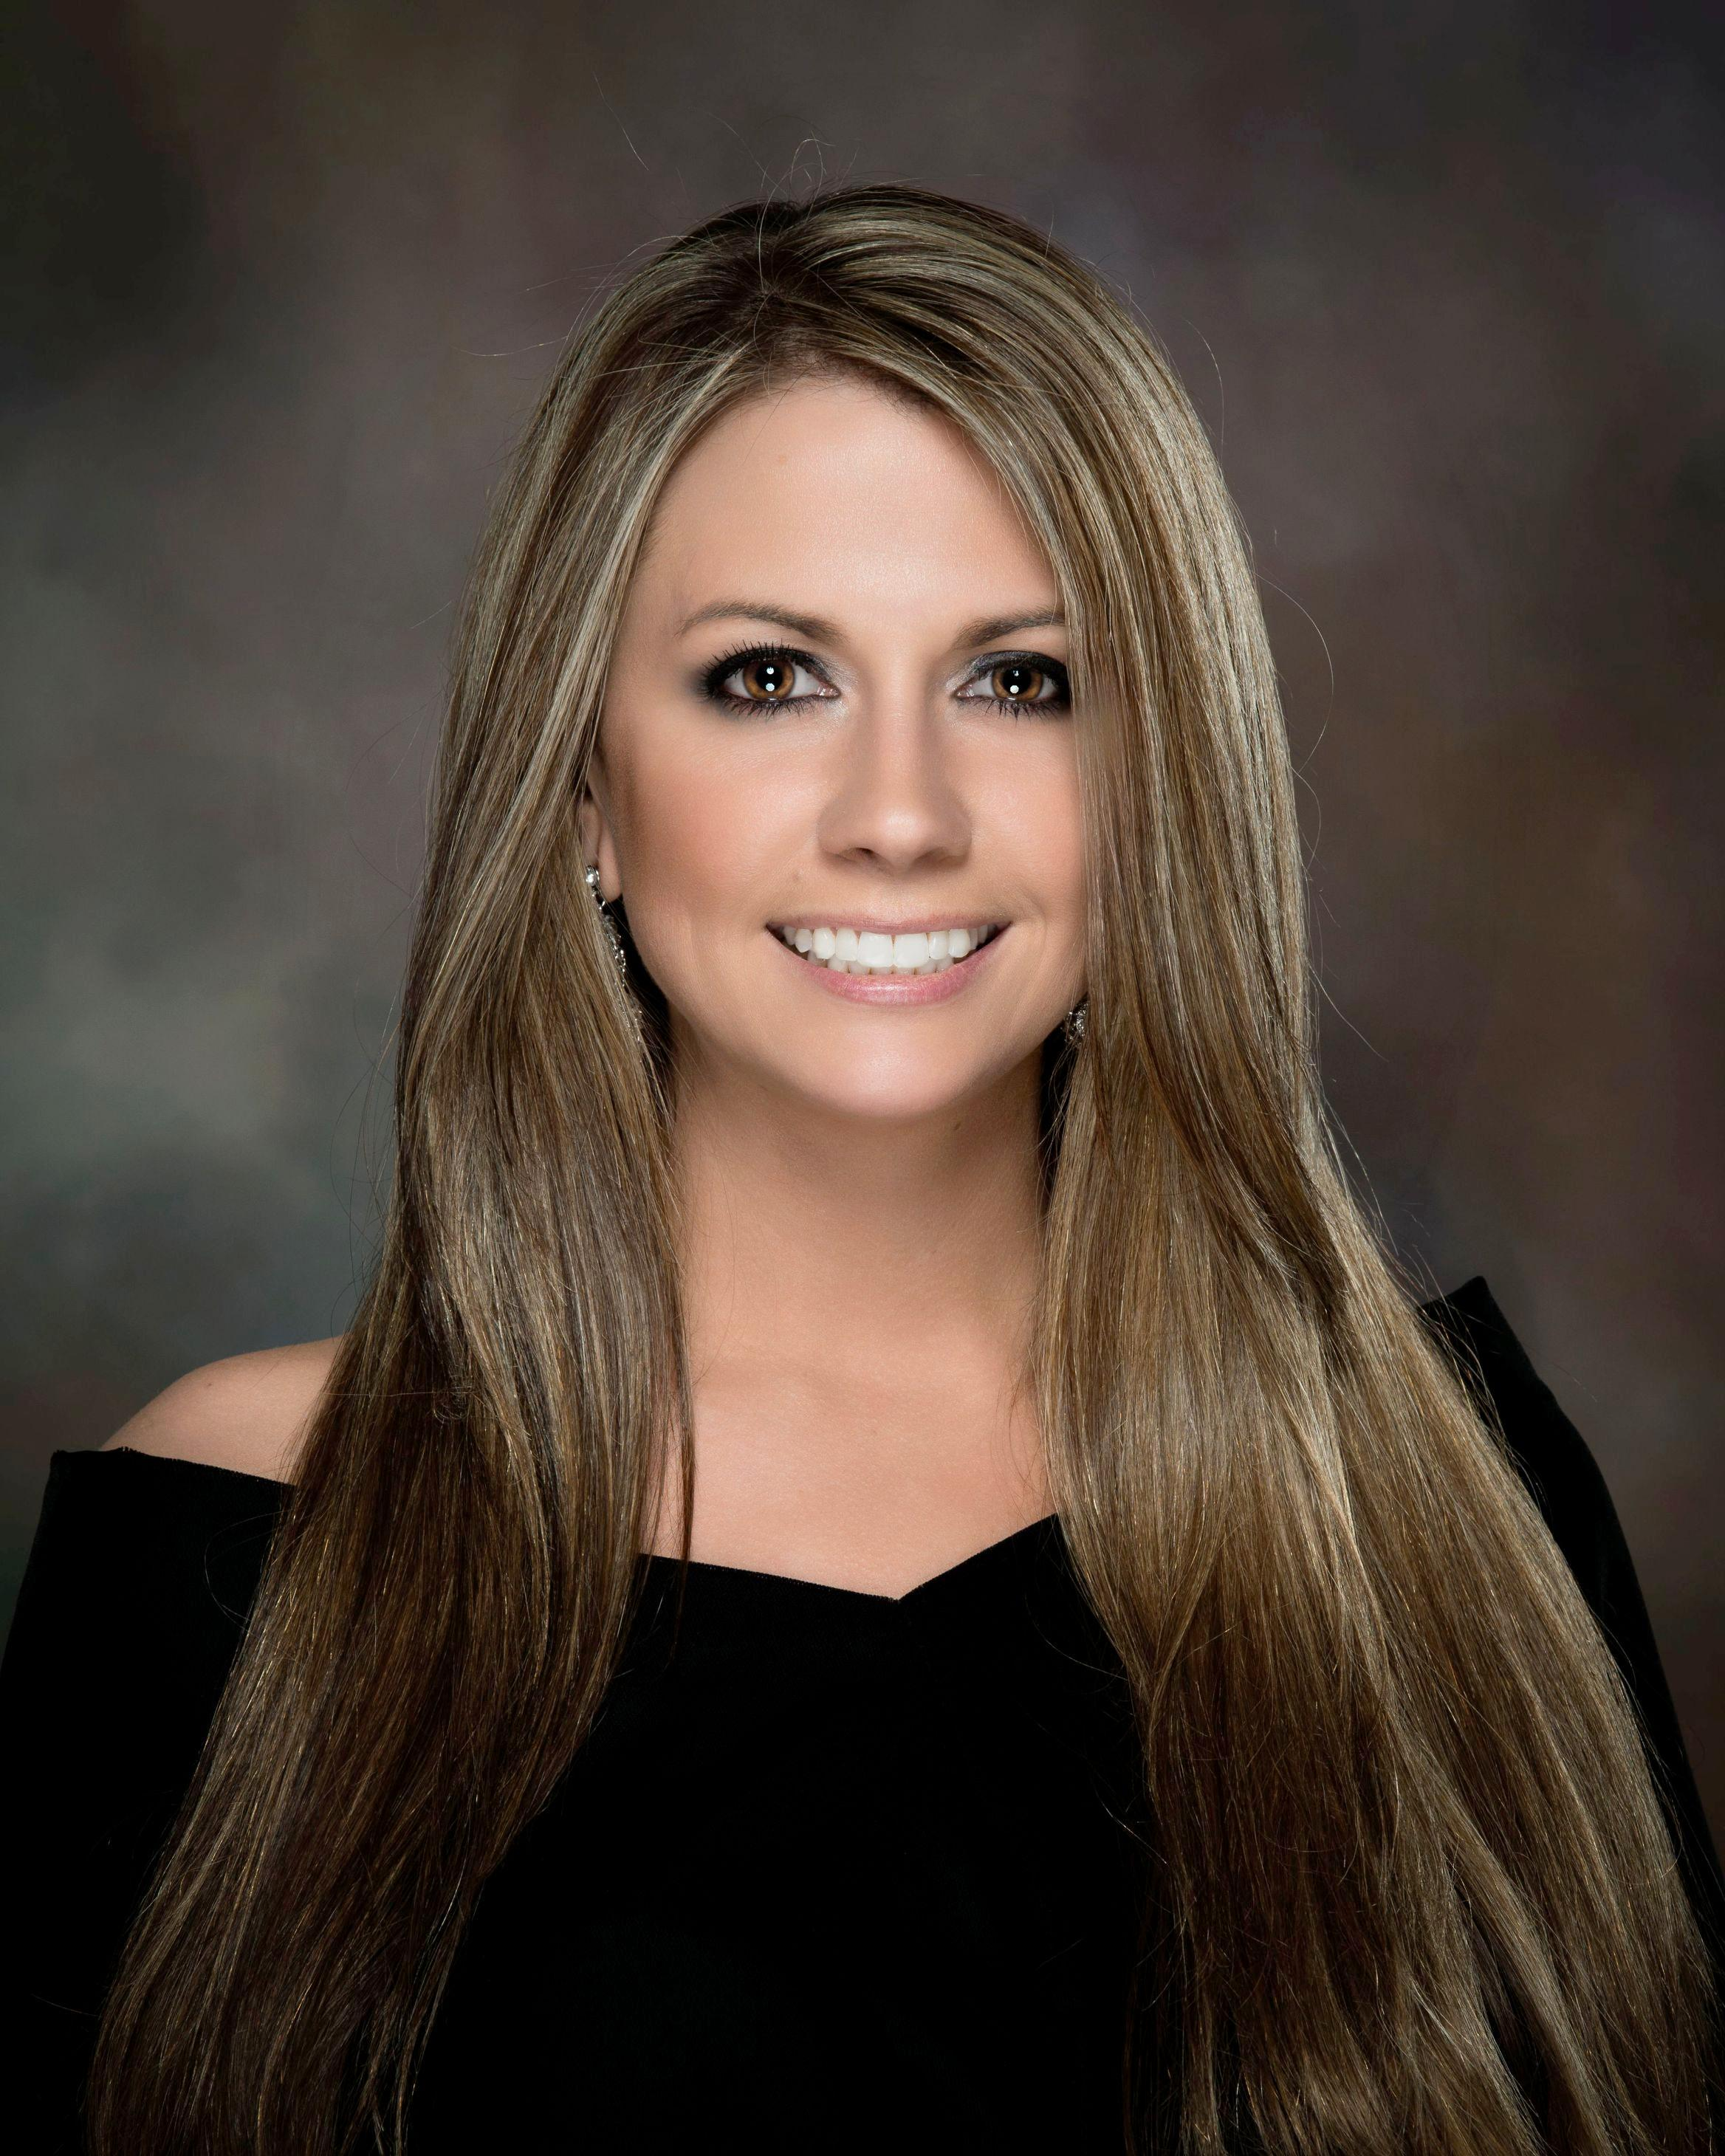 HEATHER MARIE CAGLE Financial Professional & Insurance Agent